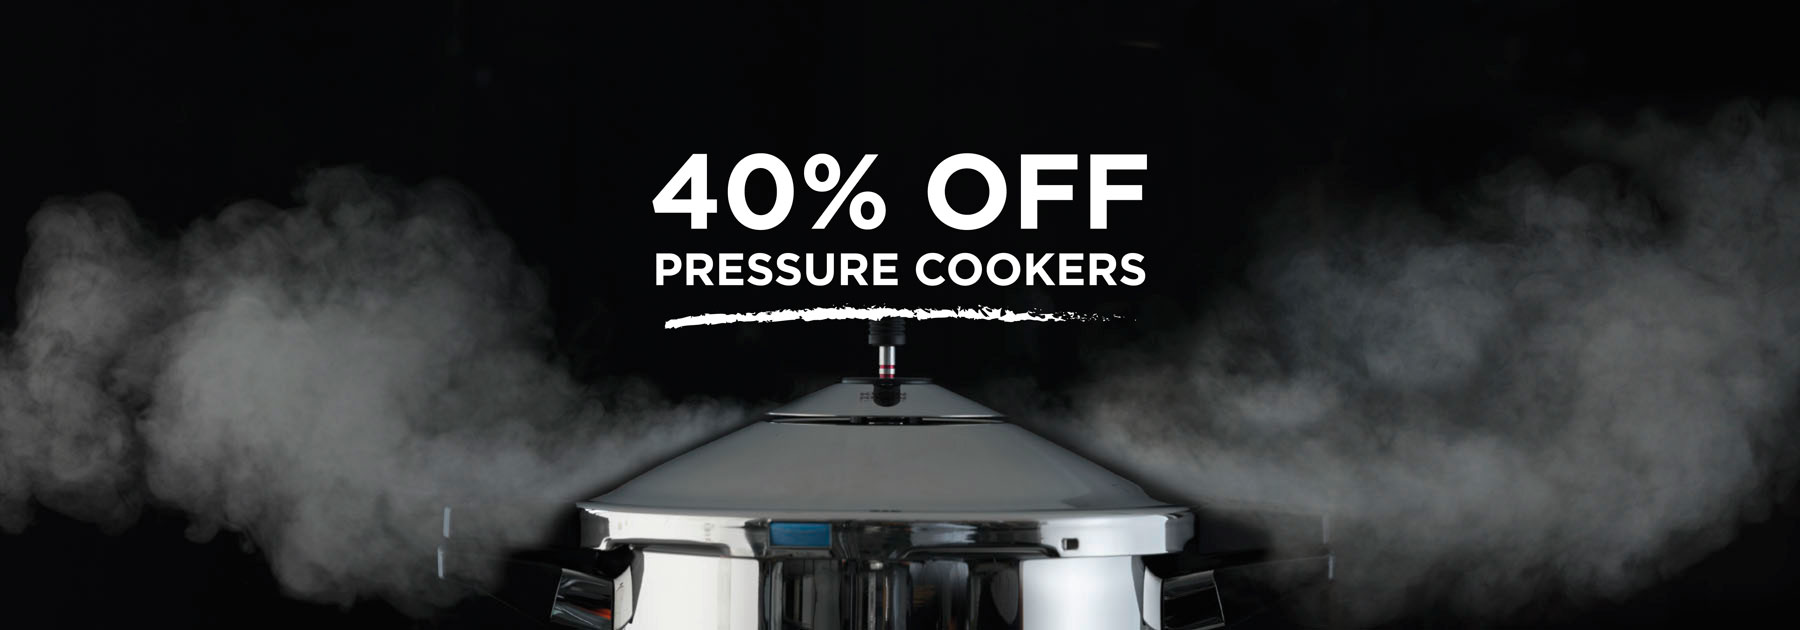 save, discount, offer, promotion, pressure cookers